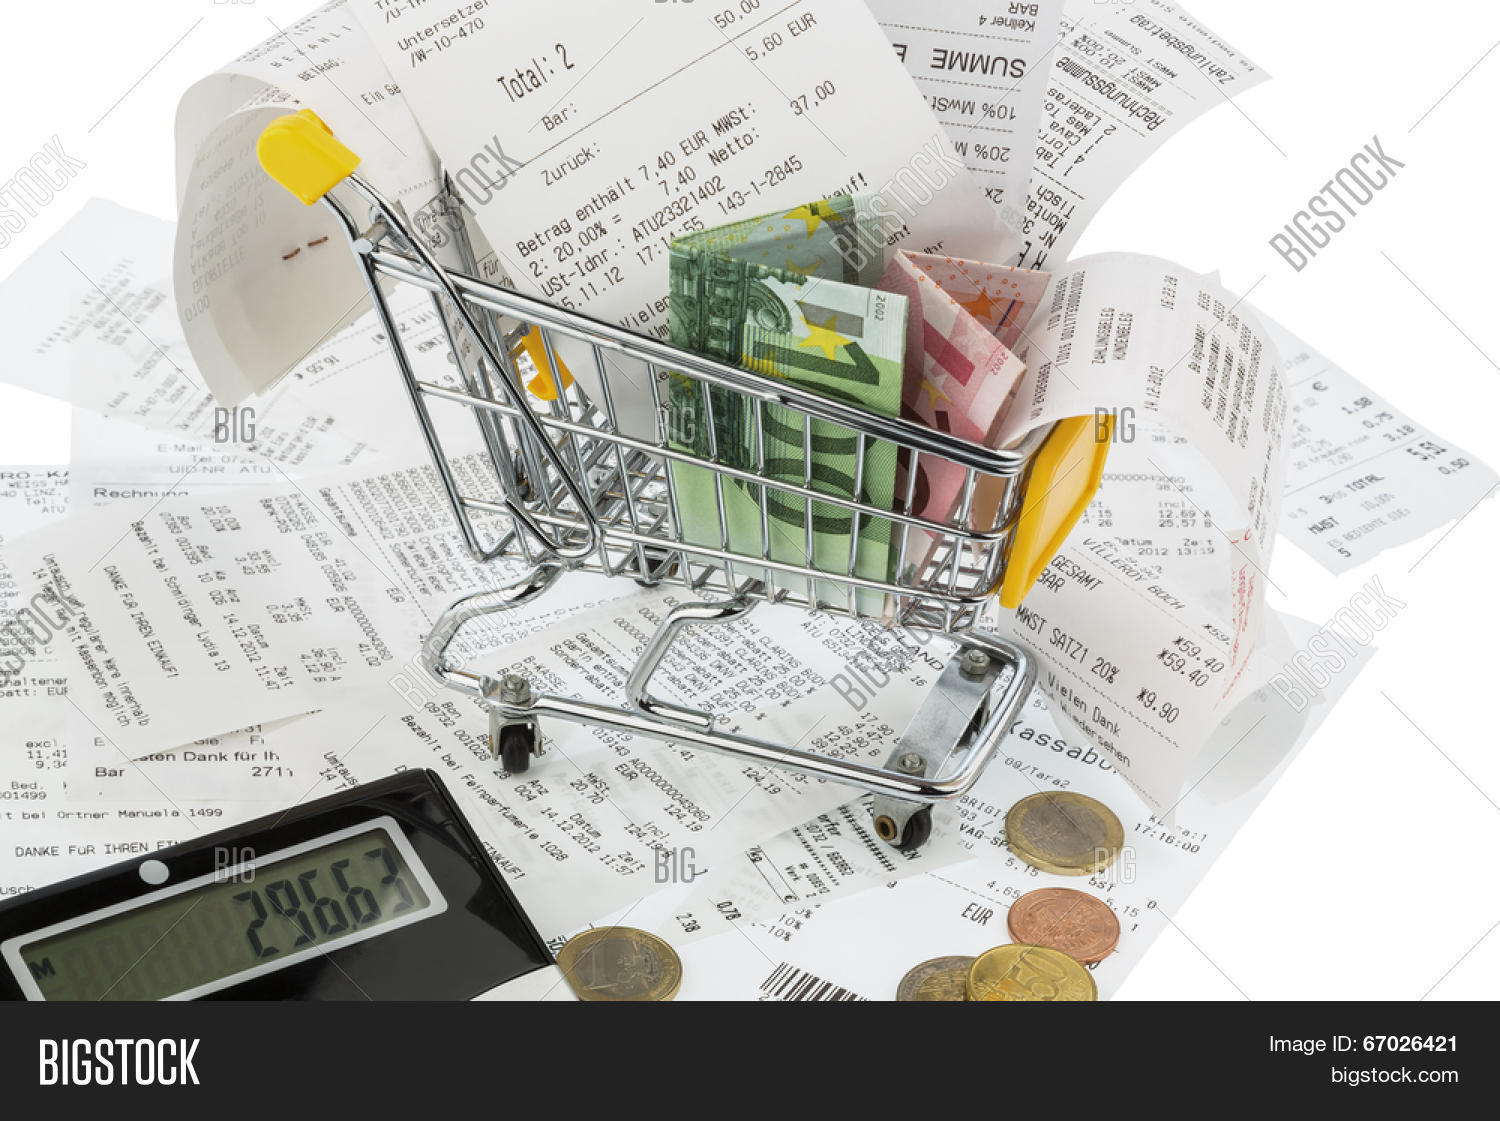 Shopping Cart Bills Image Photo Free Trial Bigstock Diagram And Receipts Symbol For Purchasing Power Consumption Inflation